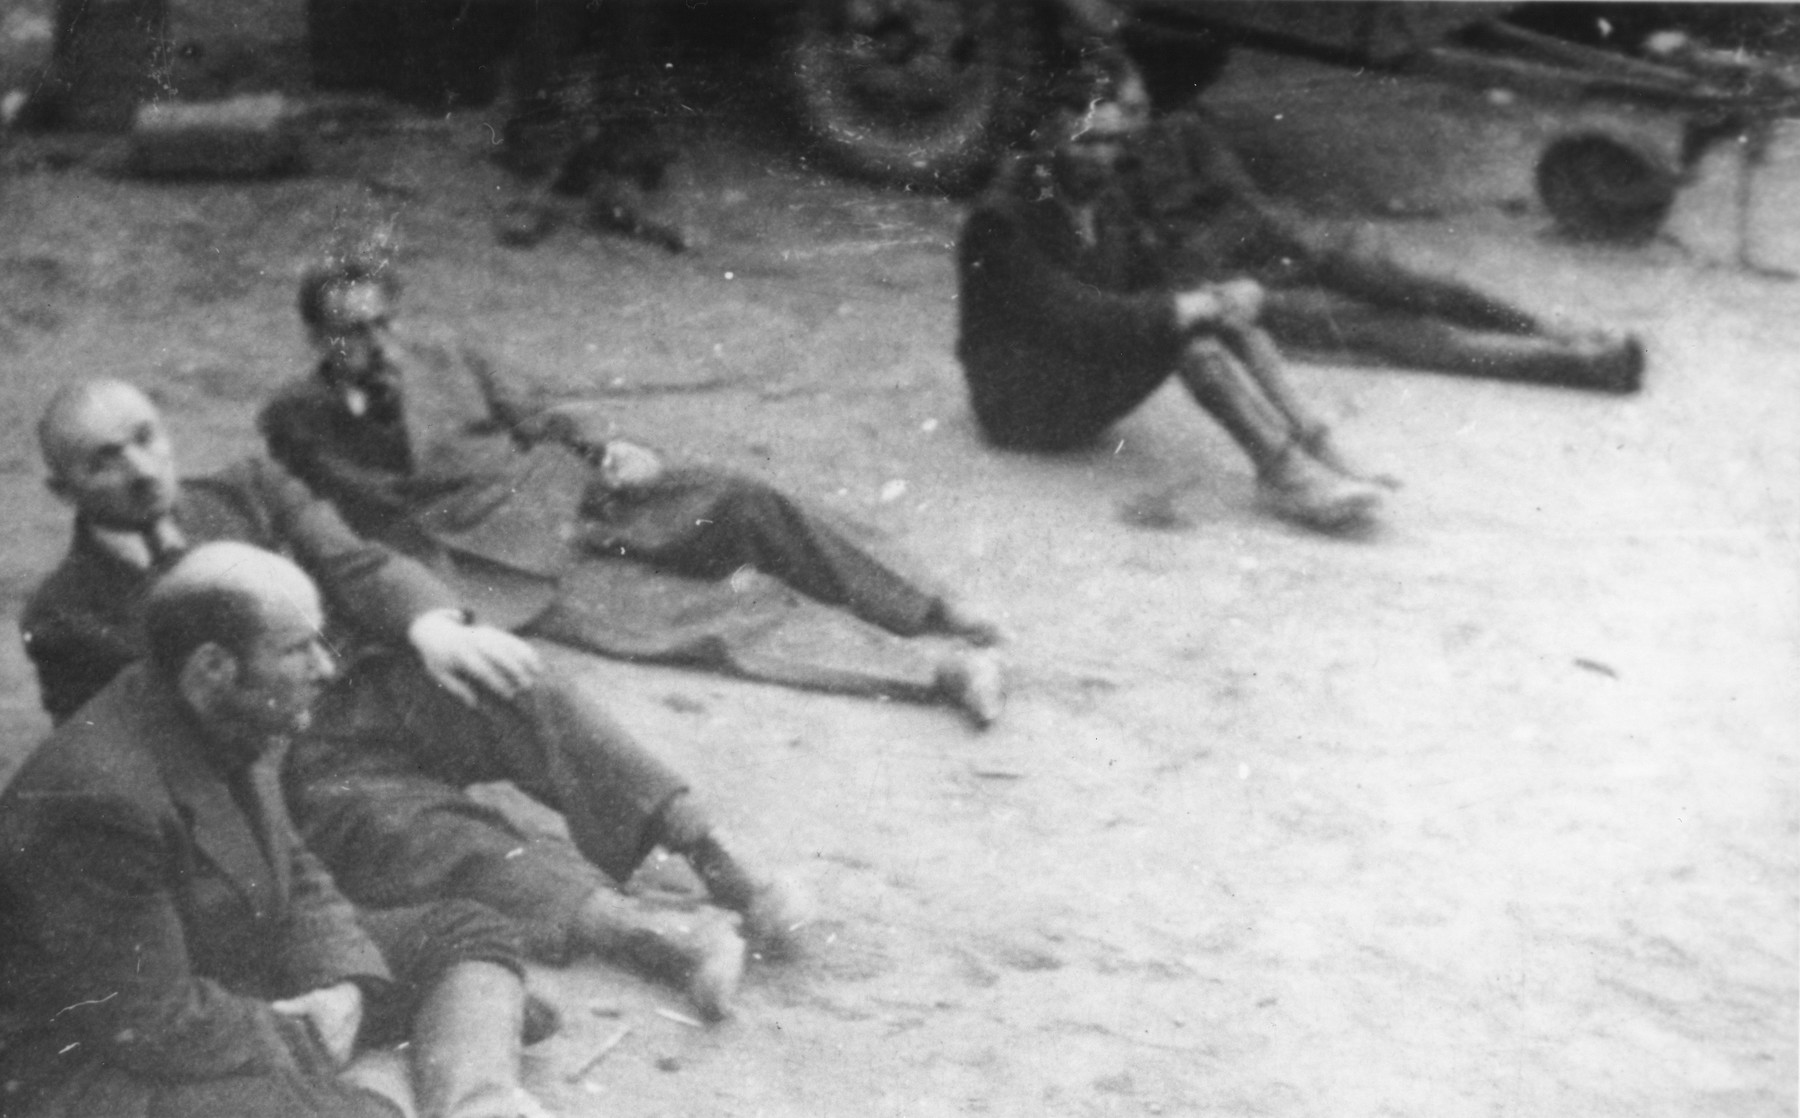 Five captured SS guards sit on the ground in the newly liberated Dora-Mittelbau concentration camp.